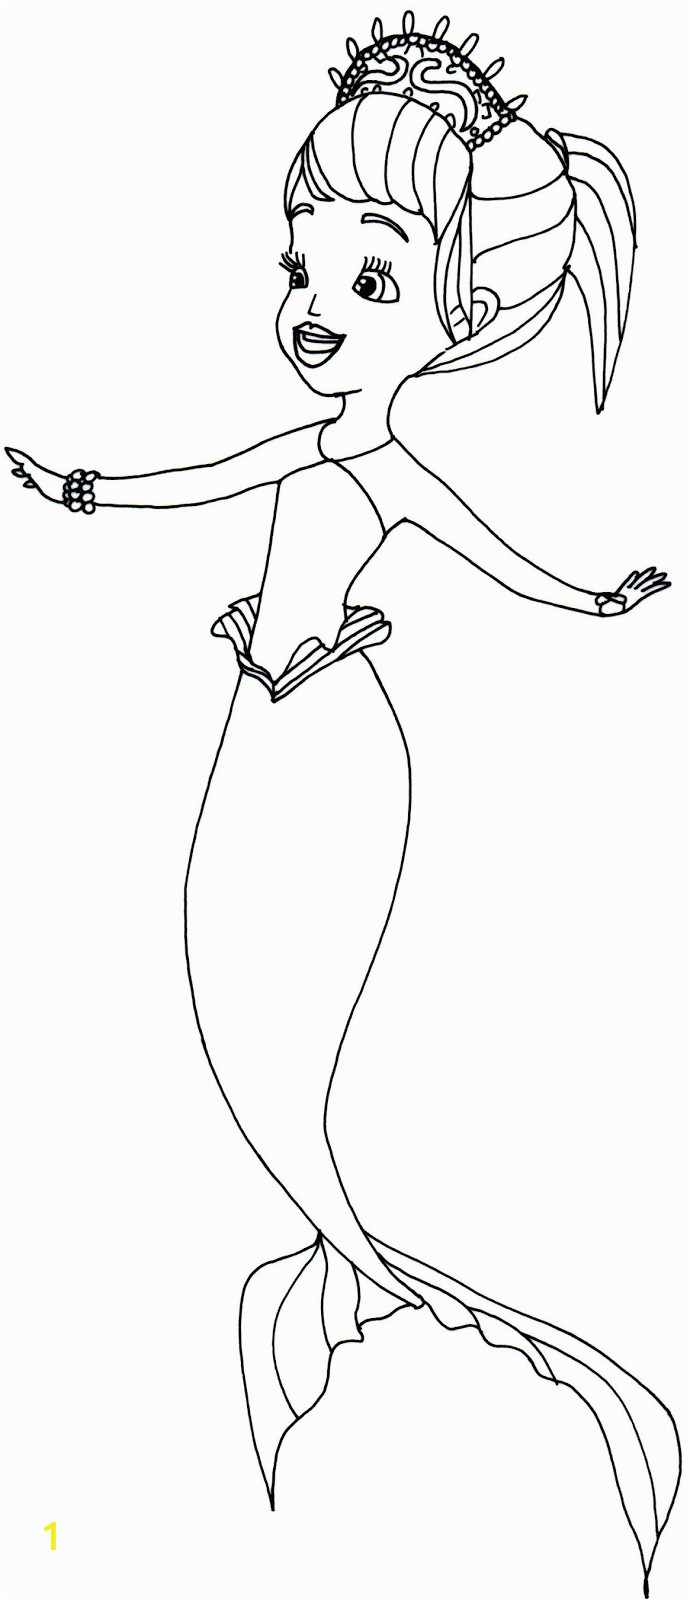 oona sofia first coloring page